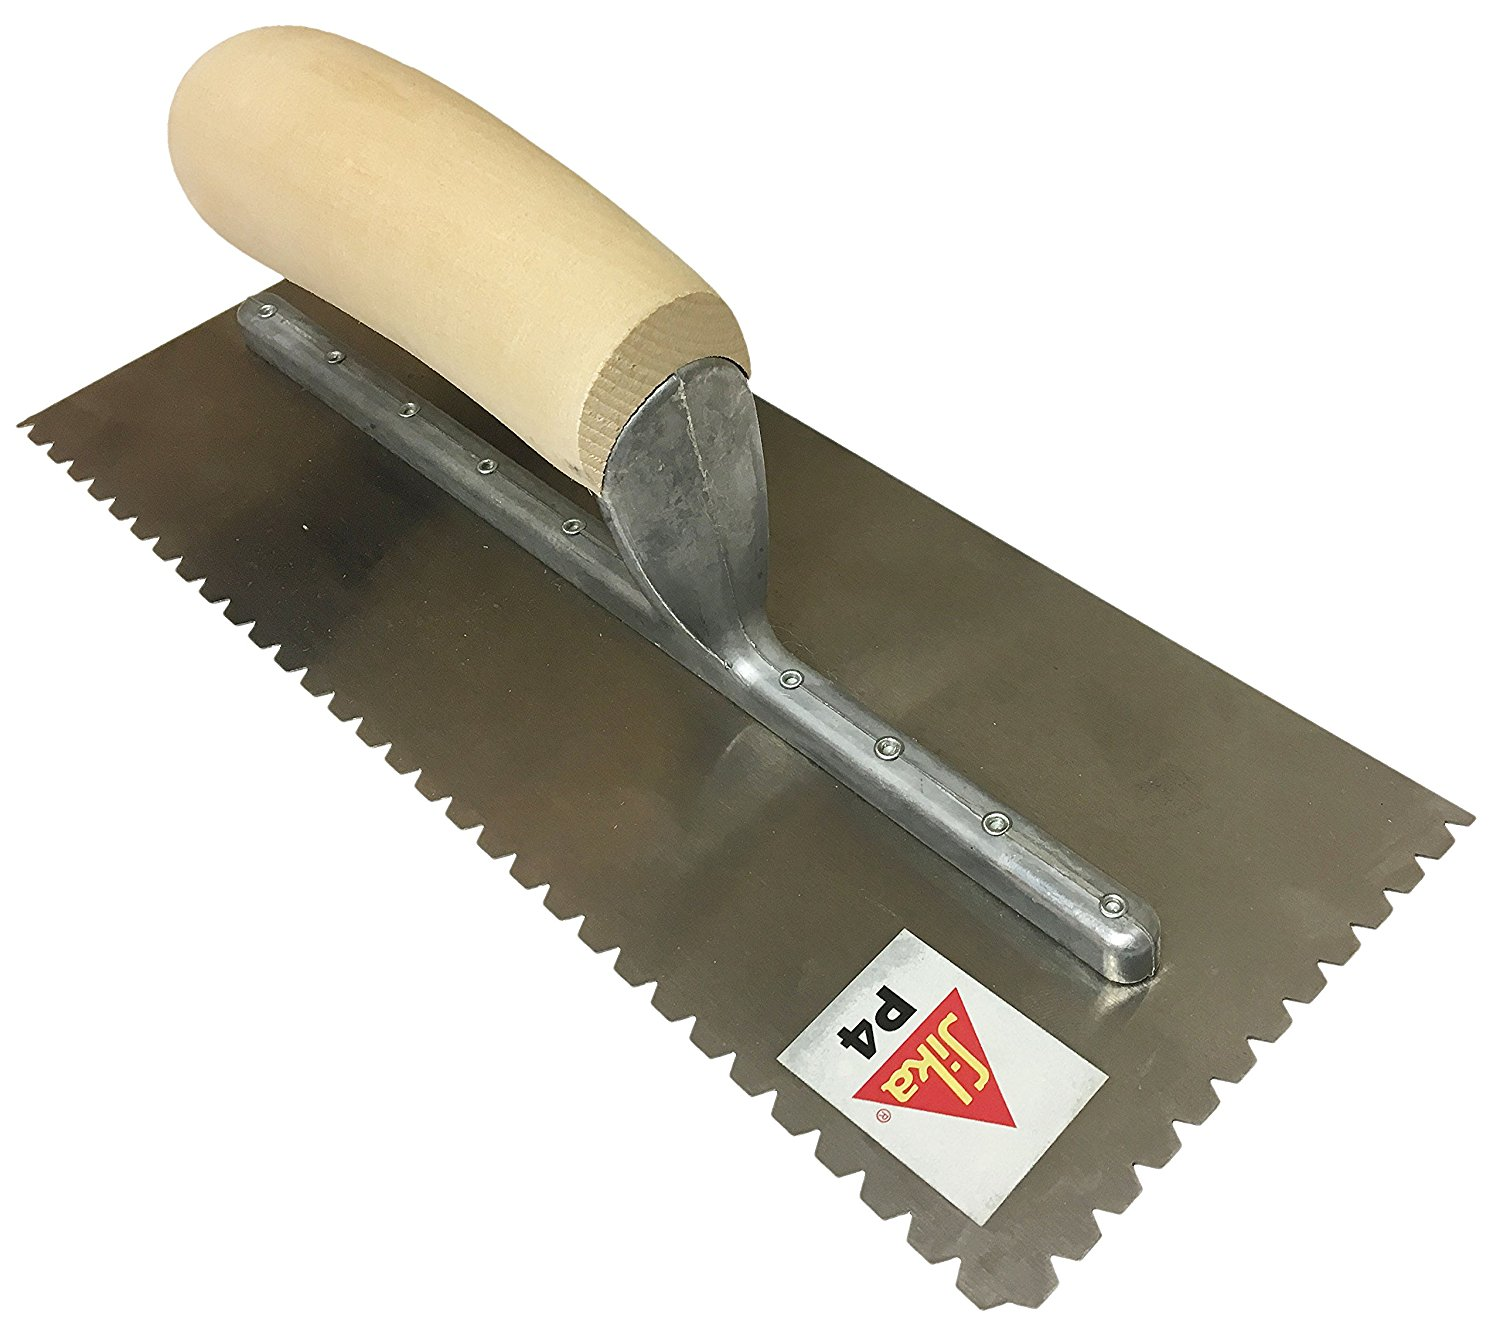 Cheap Sika Pro 3wf, find Sika Pro 3wf deals on line at